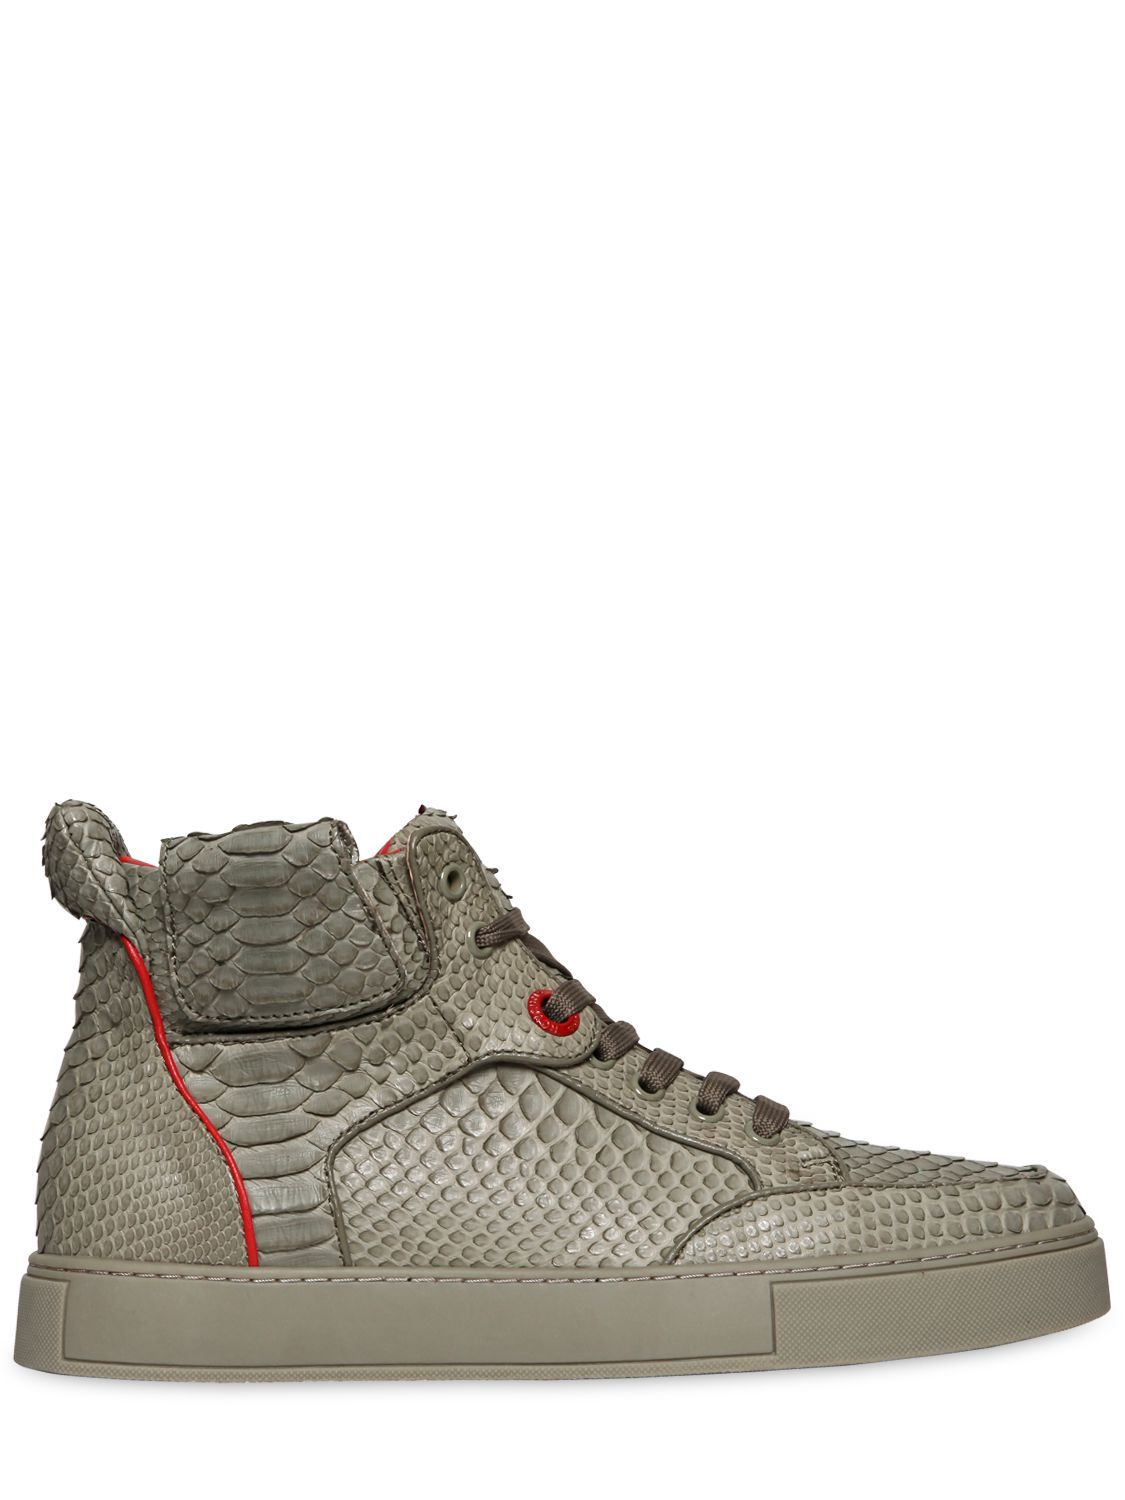 royaums handmade python high top sneakers luisaviaroma